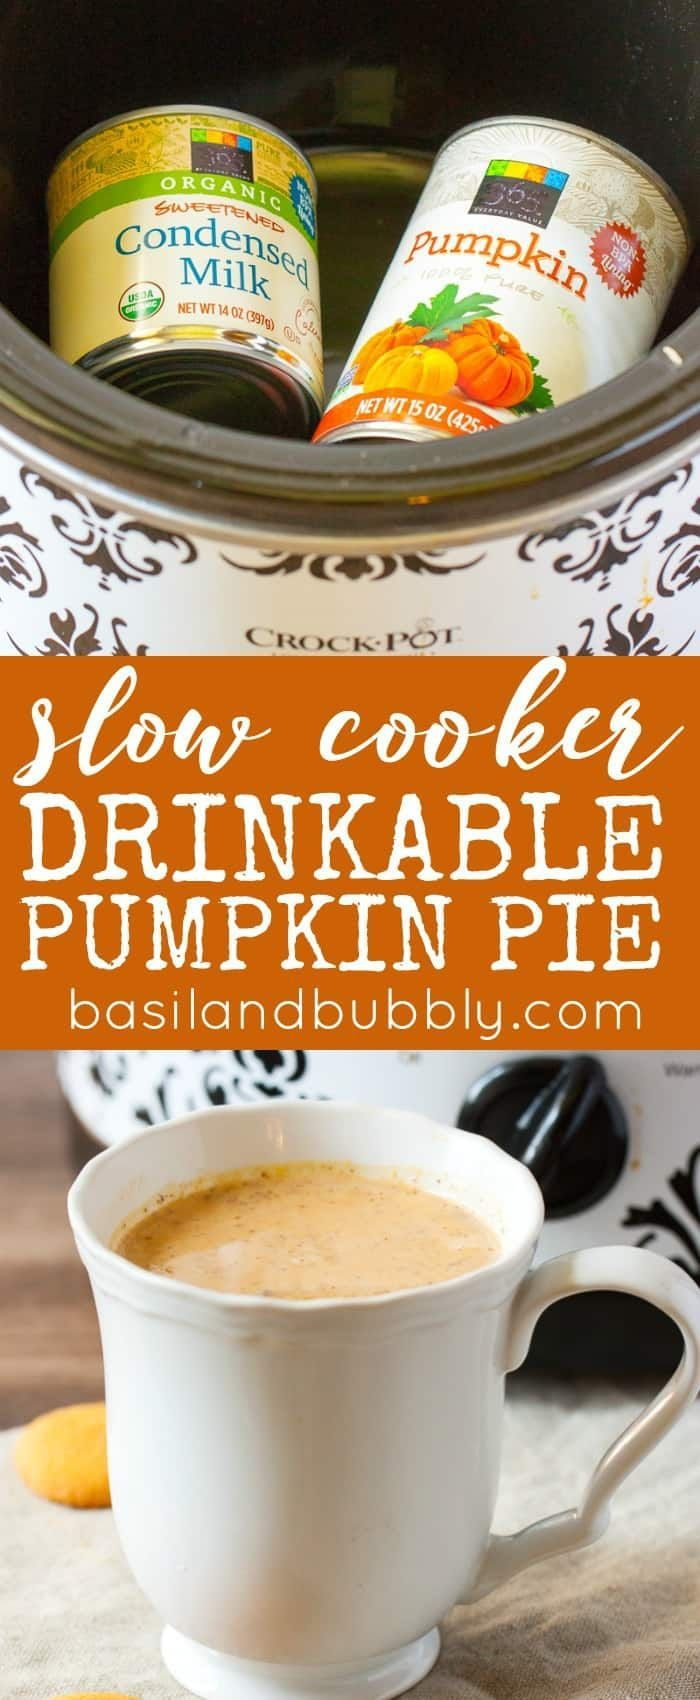 Like a pumpkin spice version of hot cocoa, without the chocolate! Slow cooker drinkable pumpkin pie can be made and served in your crock pot for your next party. I love this easy to make hot pumpkin holiday drink and can't wait to make it at Thanksgiving